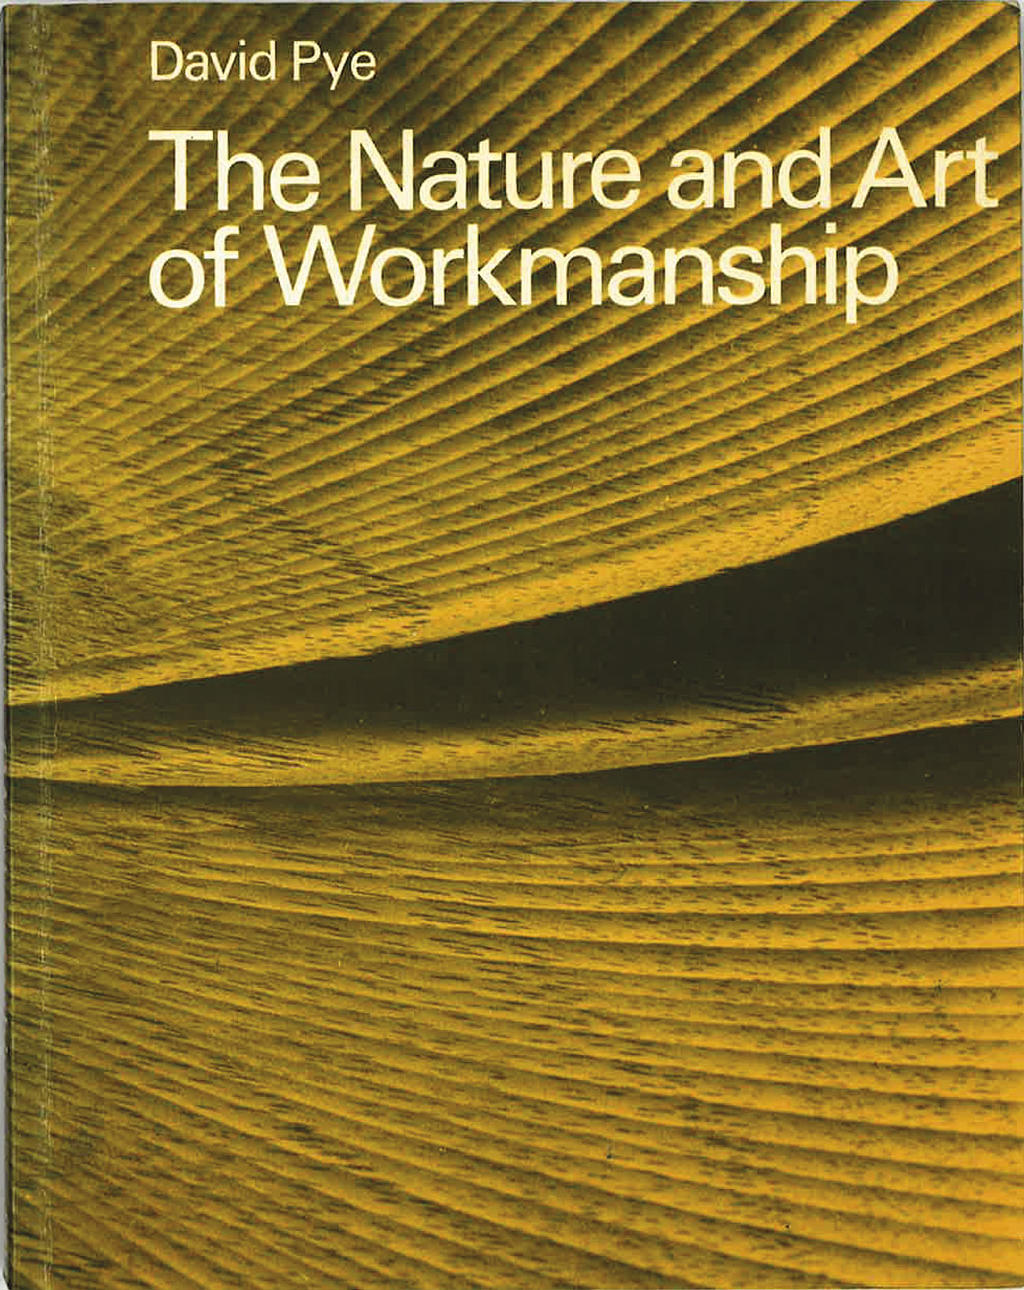 David Pye: The Nature and Art of Workmanship.